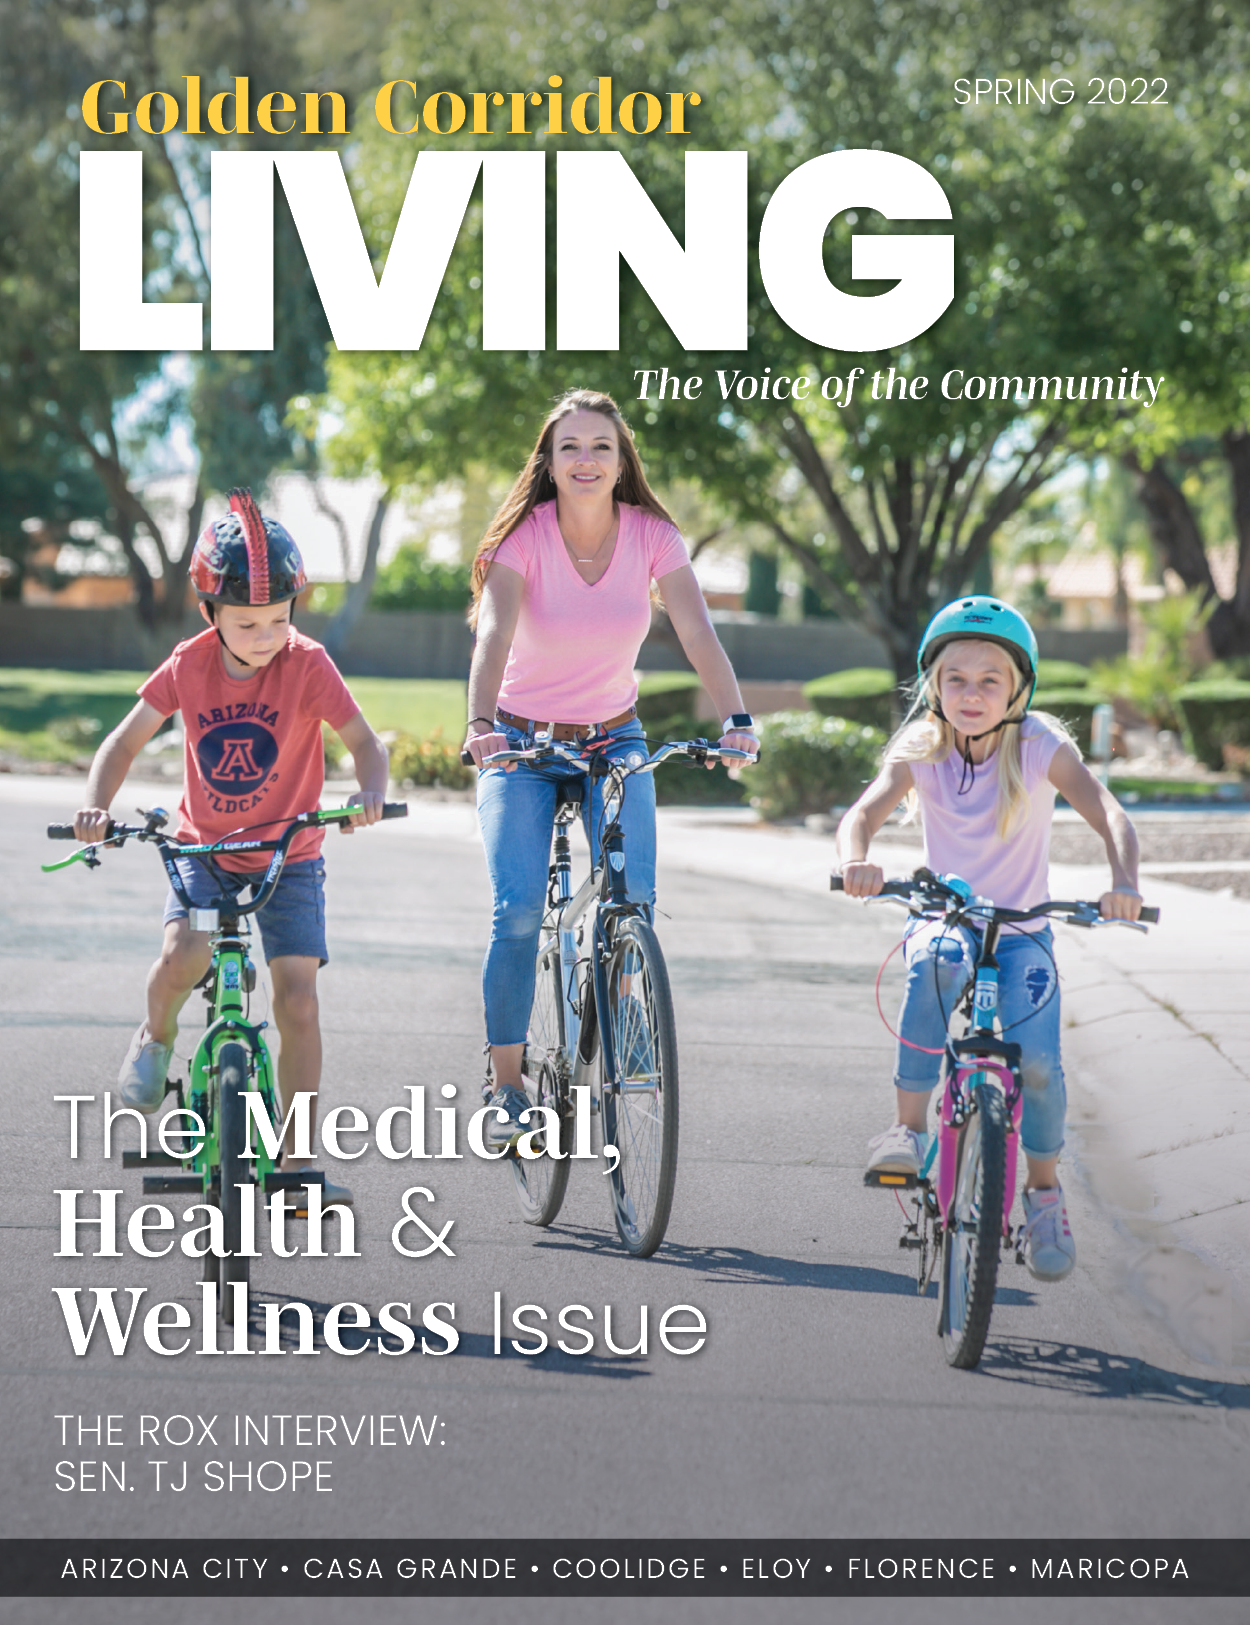 Golden Corrifor LIVING Magazine